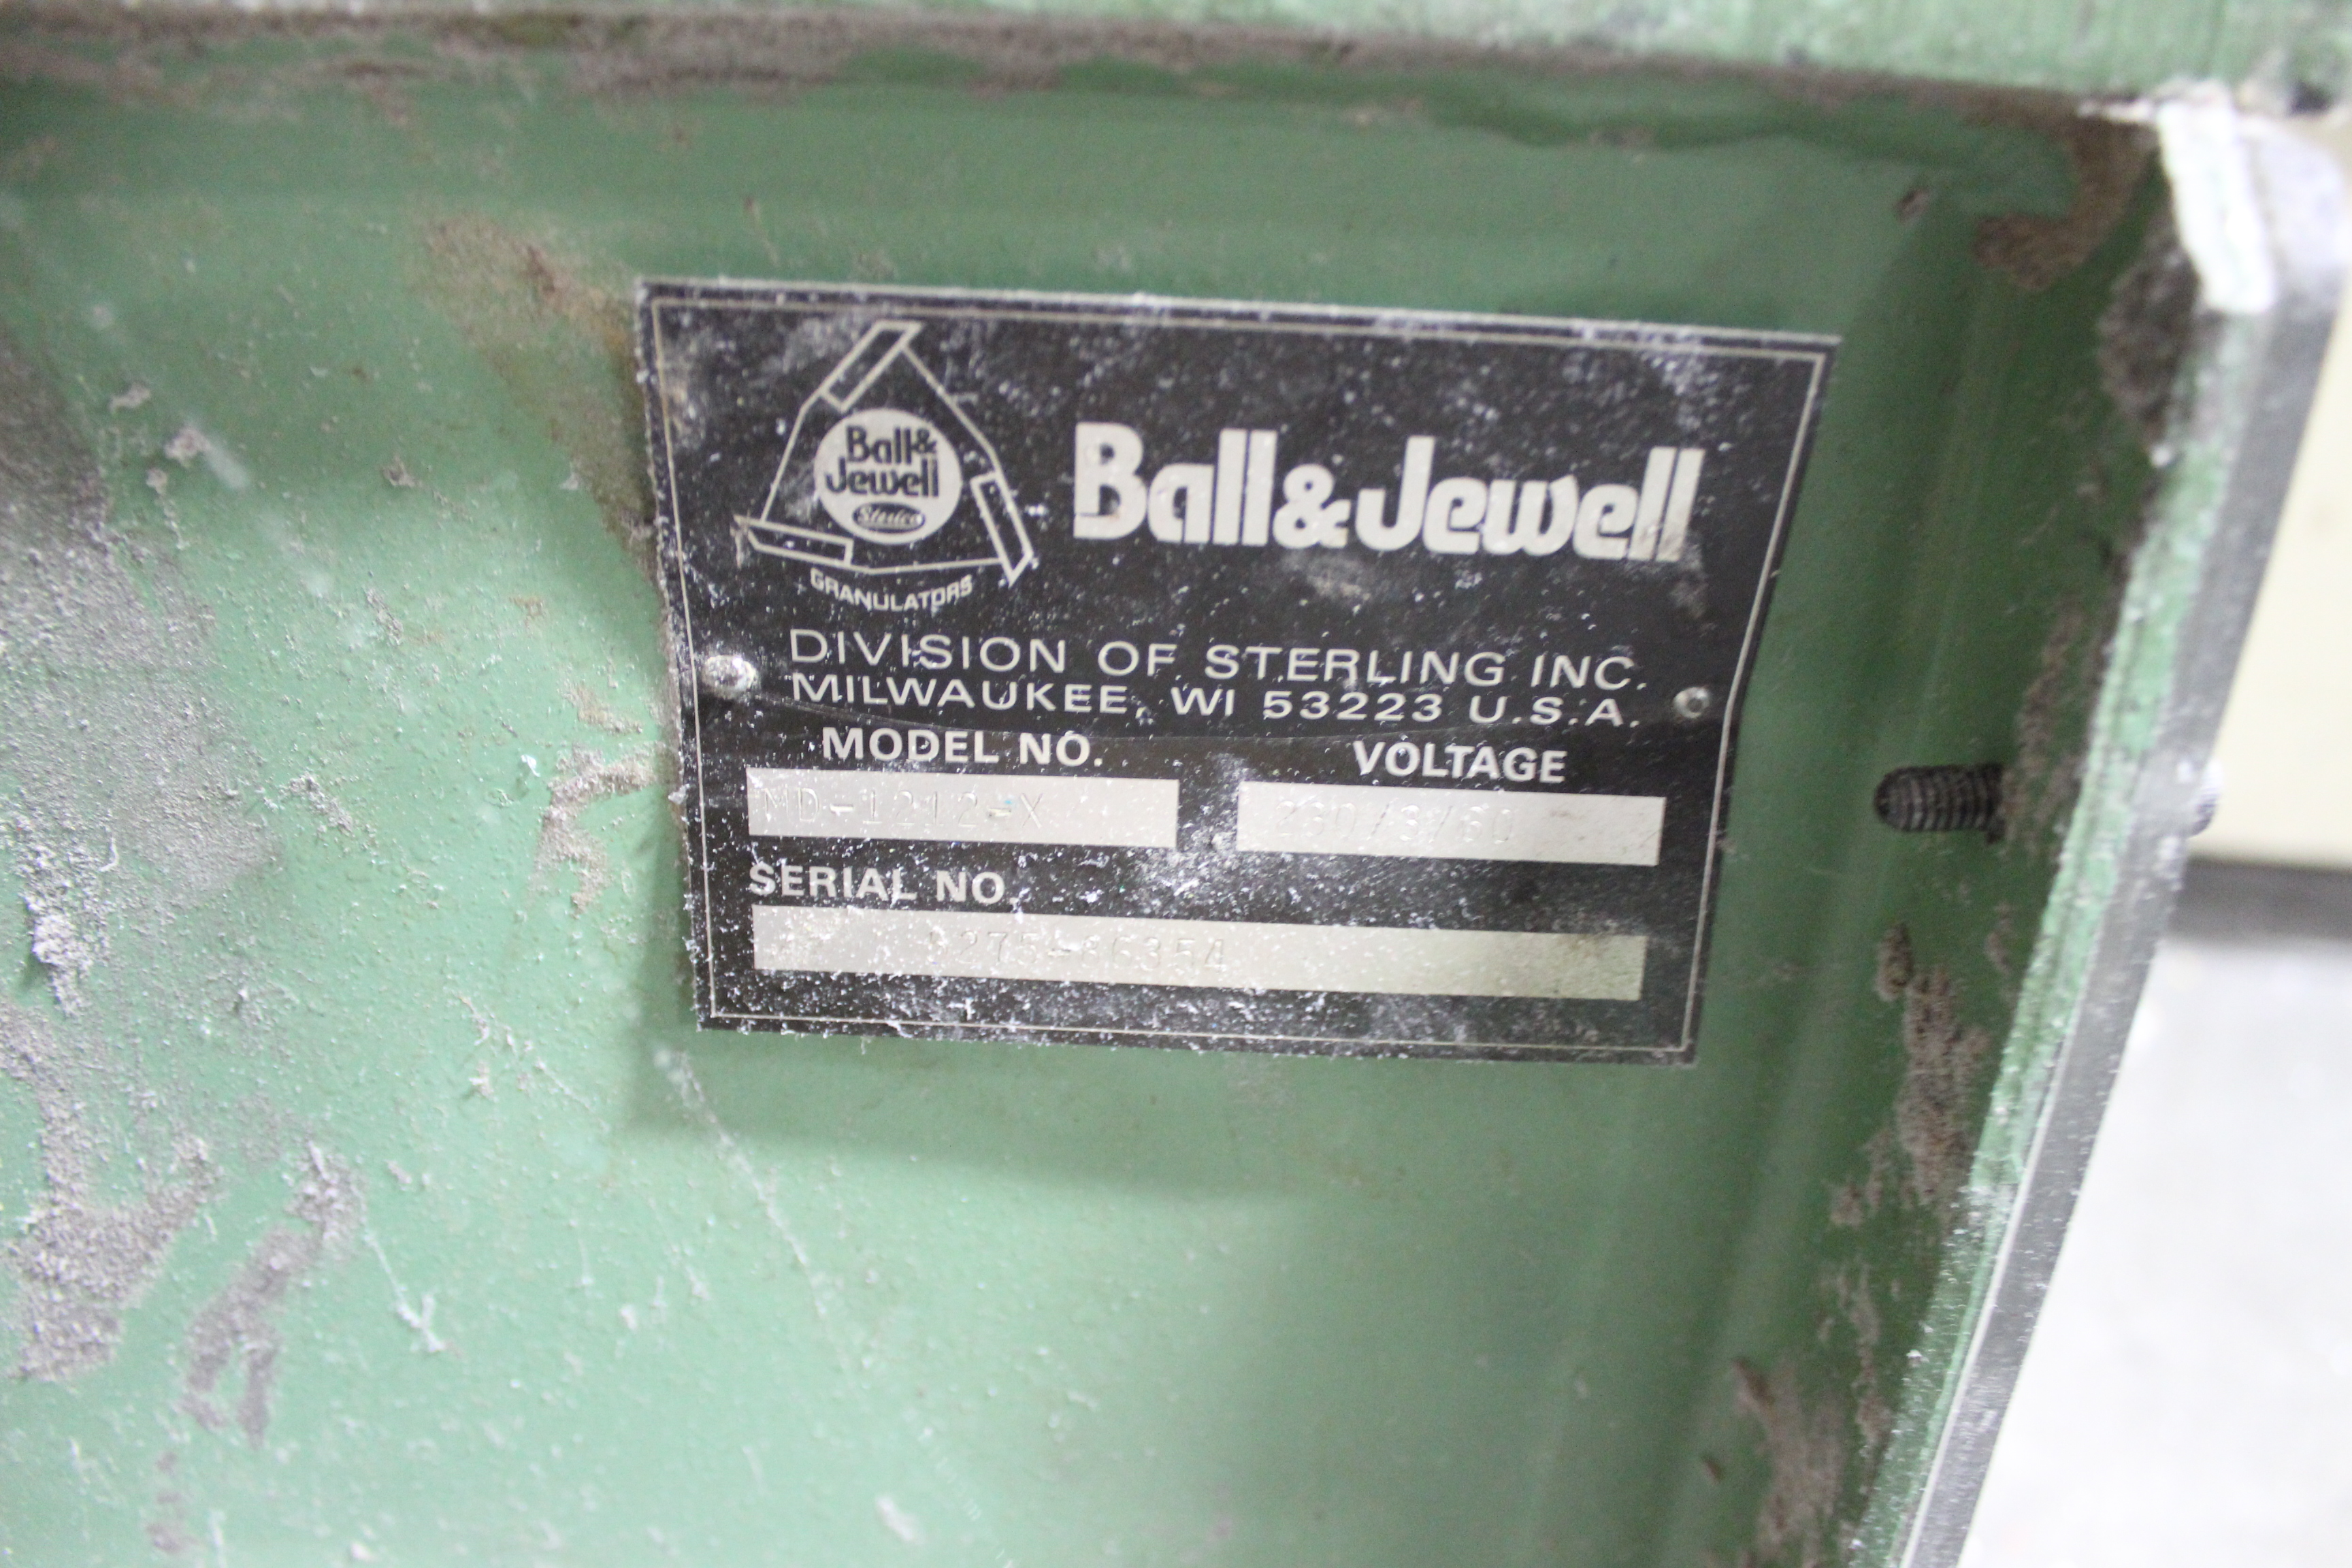 Ball and Jewell 1212SC Plastic Grinder B2811 - Image 9 of 10